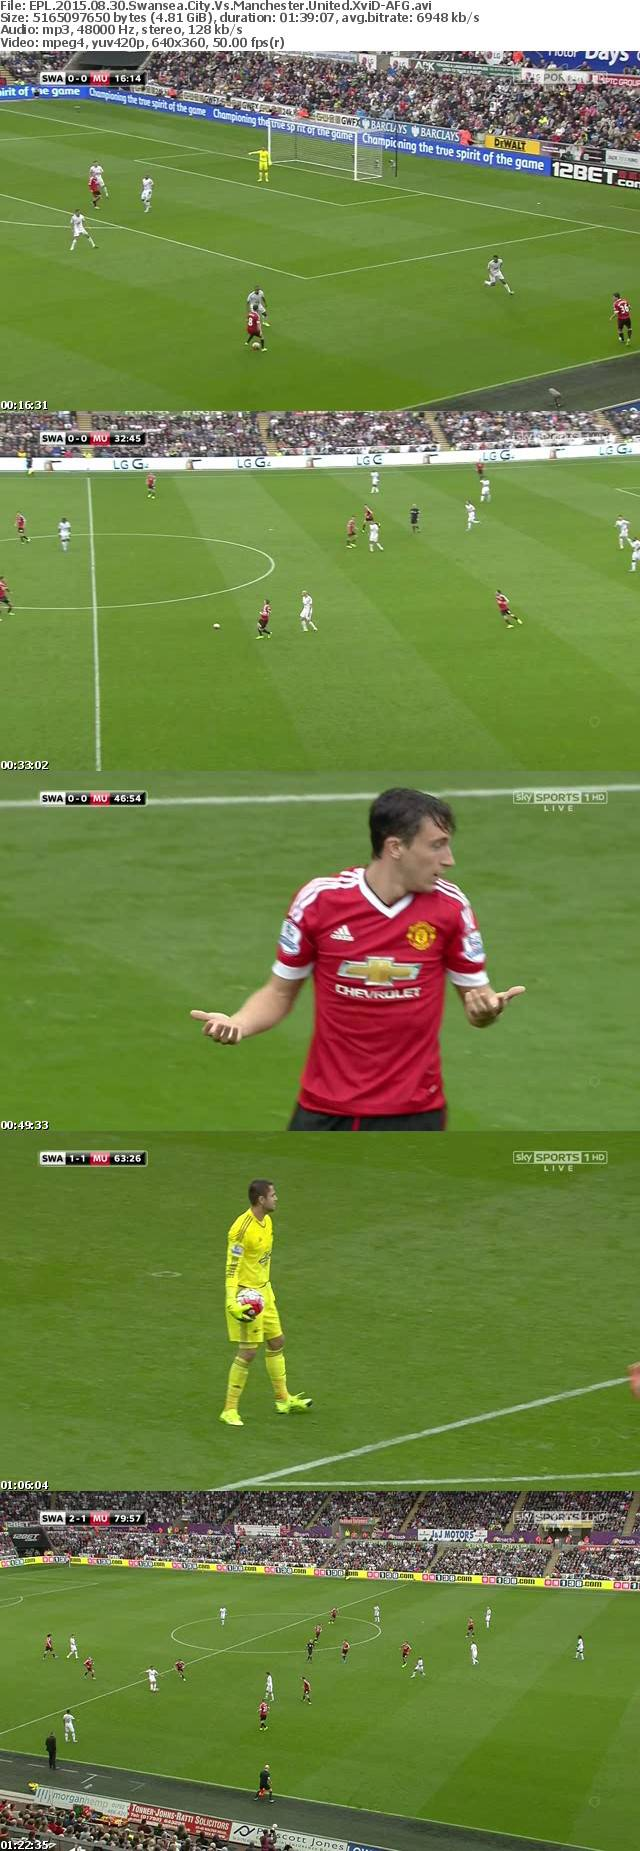 EPL 2015 08 30 Swansea City Vs Manchester United XviD-AFG